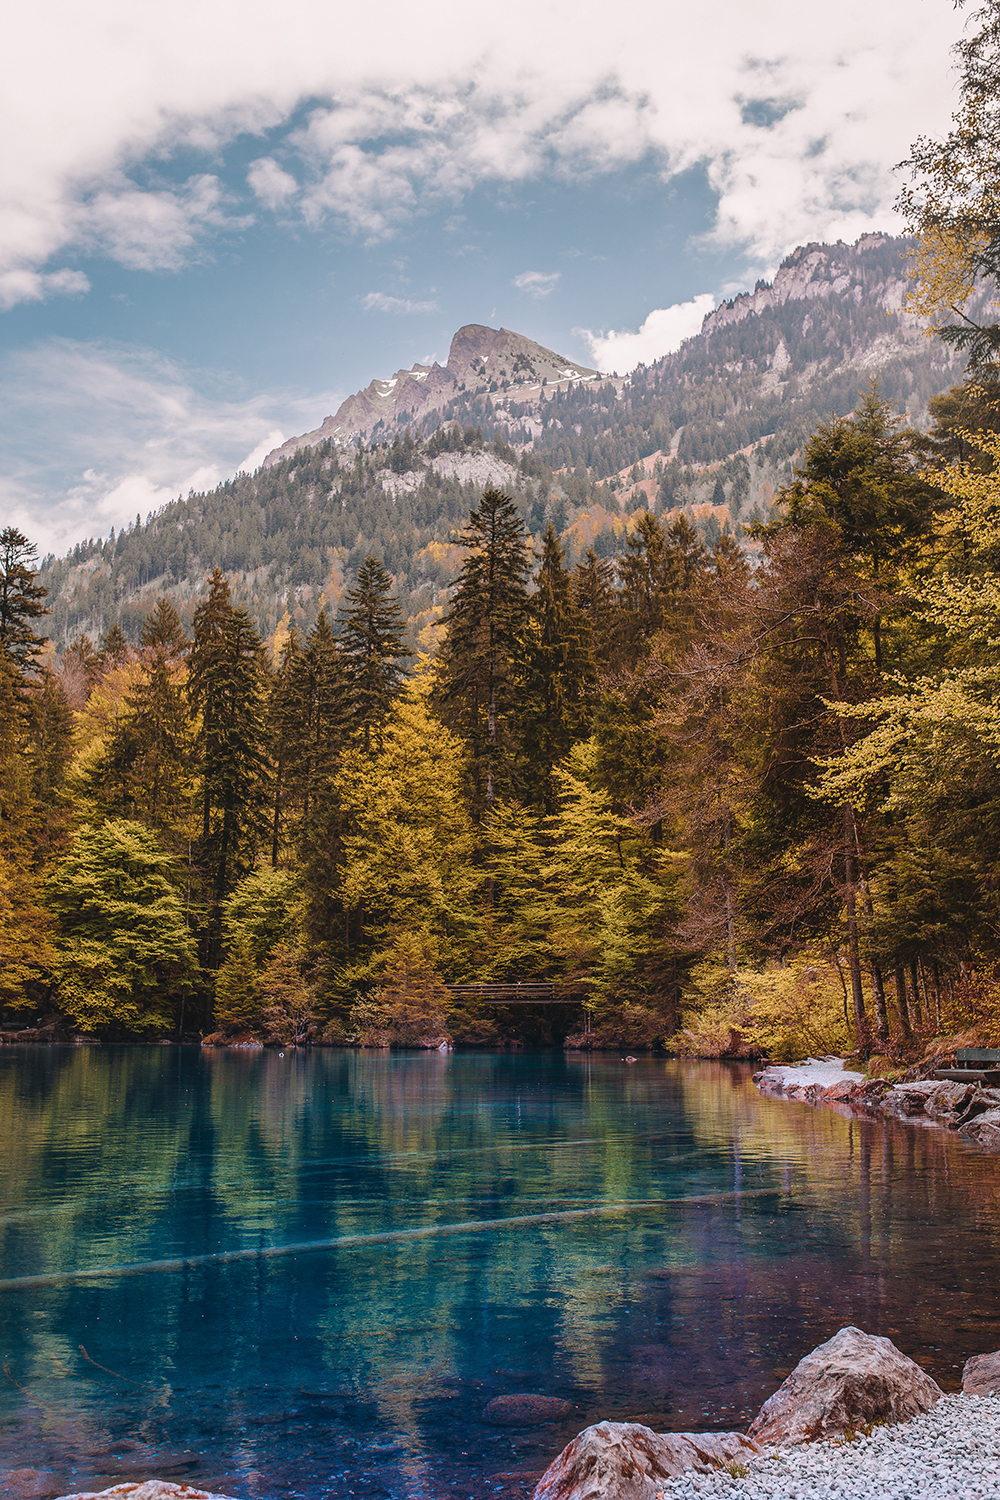 If snow-capped mountains, crystalline blue water, or fairy forests are your kind of thing, then plan a trip to Lake Blausee when you visit Switzerland!